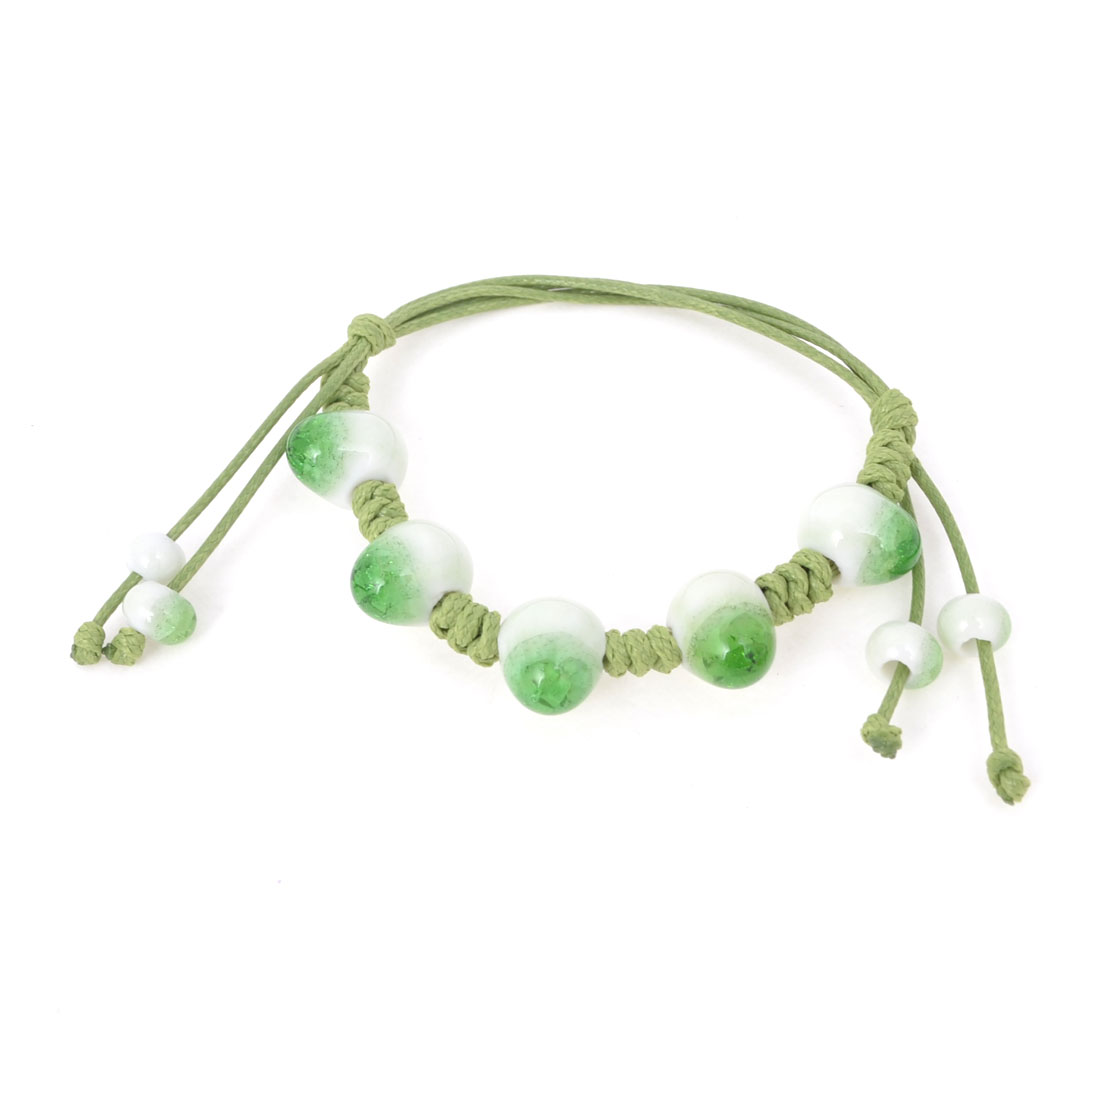 Ladies Wrist Decor Stretchy Broken Bead Hand Chain Ceramic Bracelet Green White